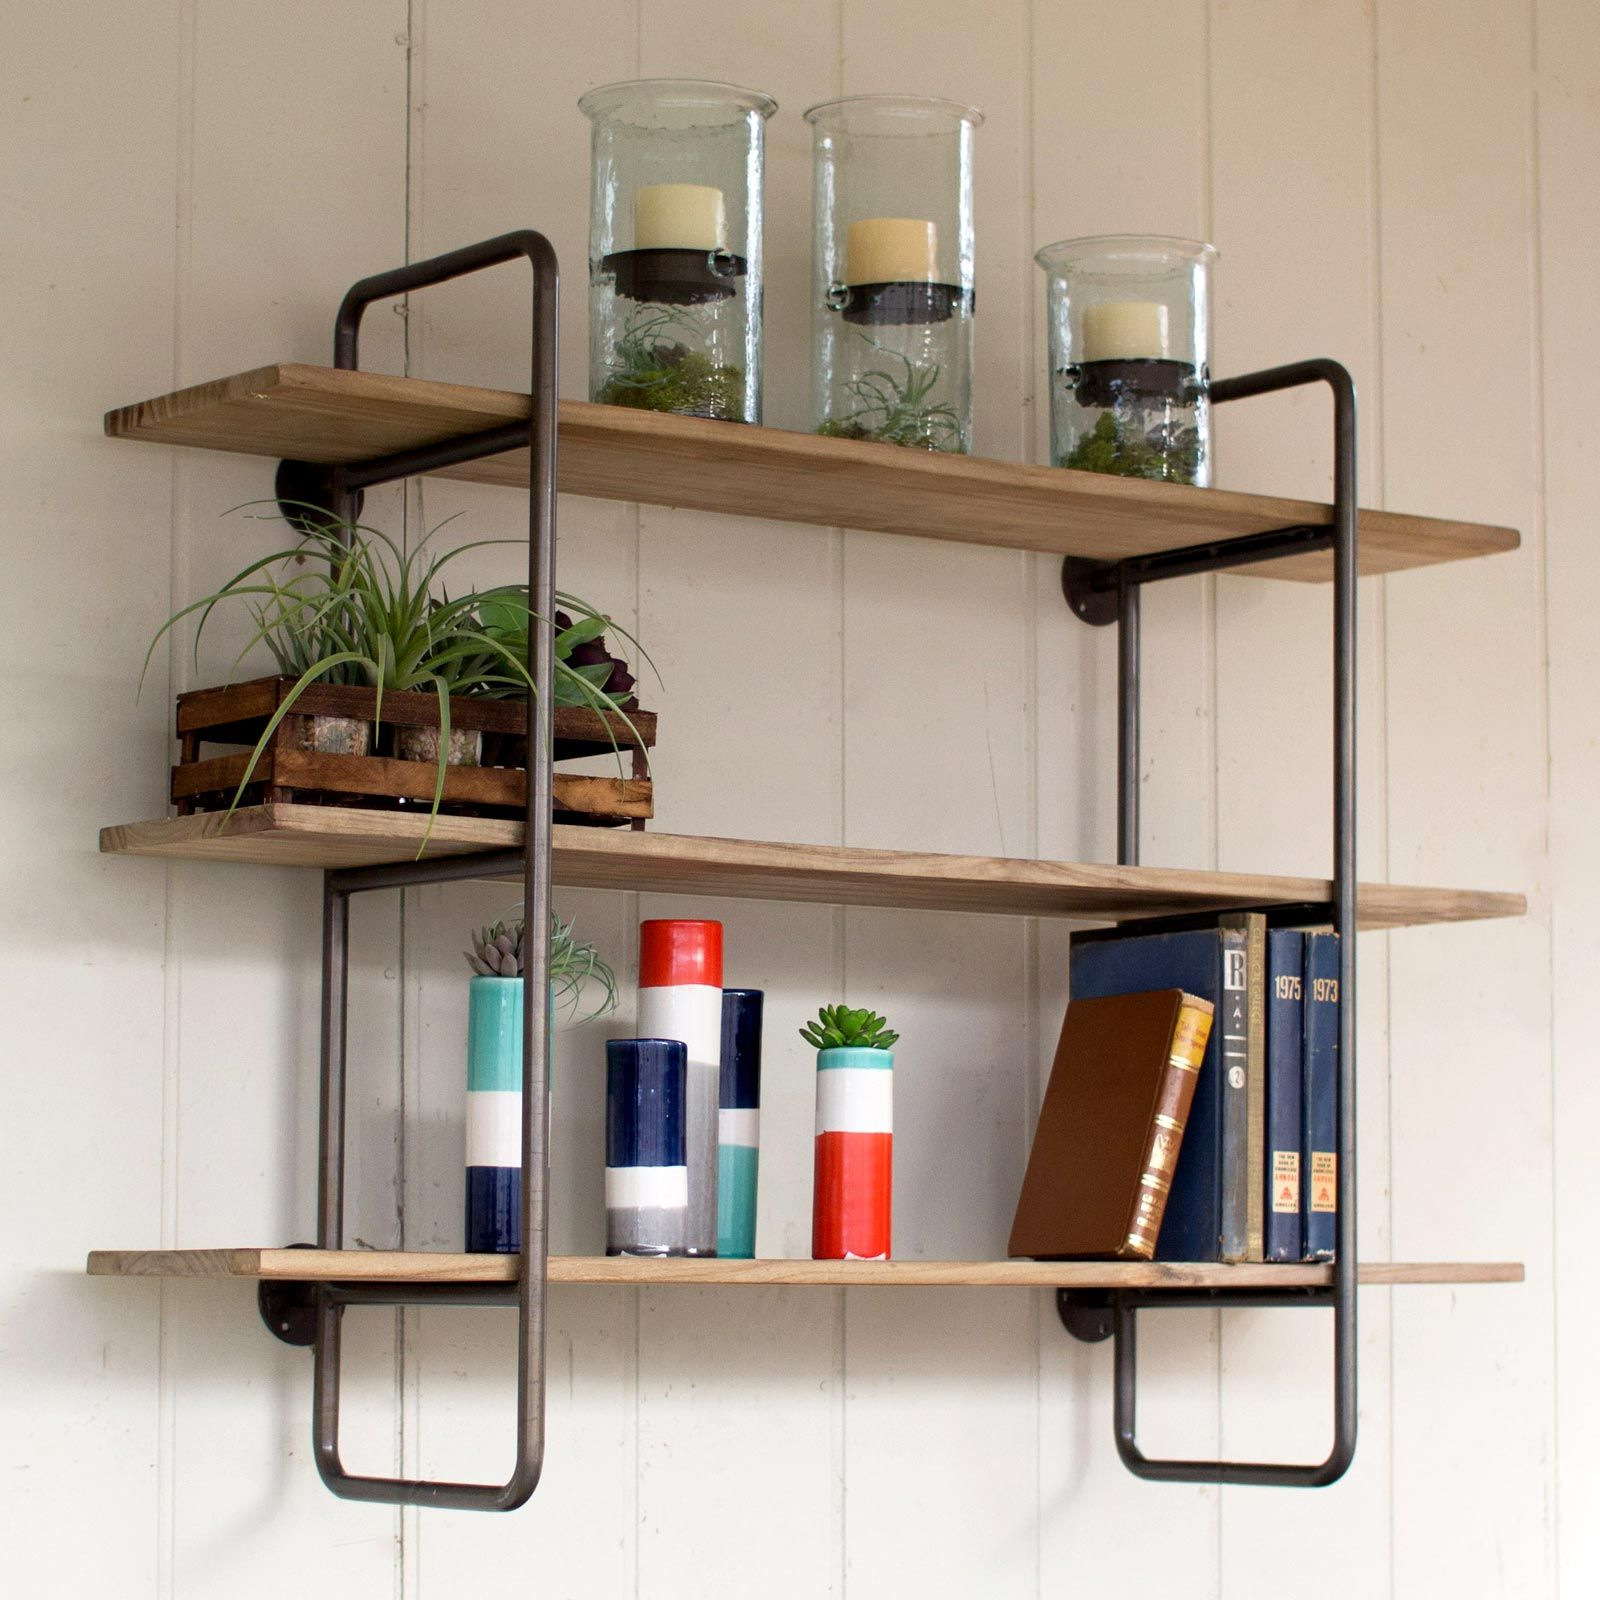 Shelves On The Wall Furniture And Décor For The Modern Lifestyle Industrial